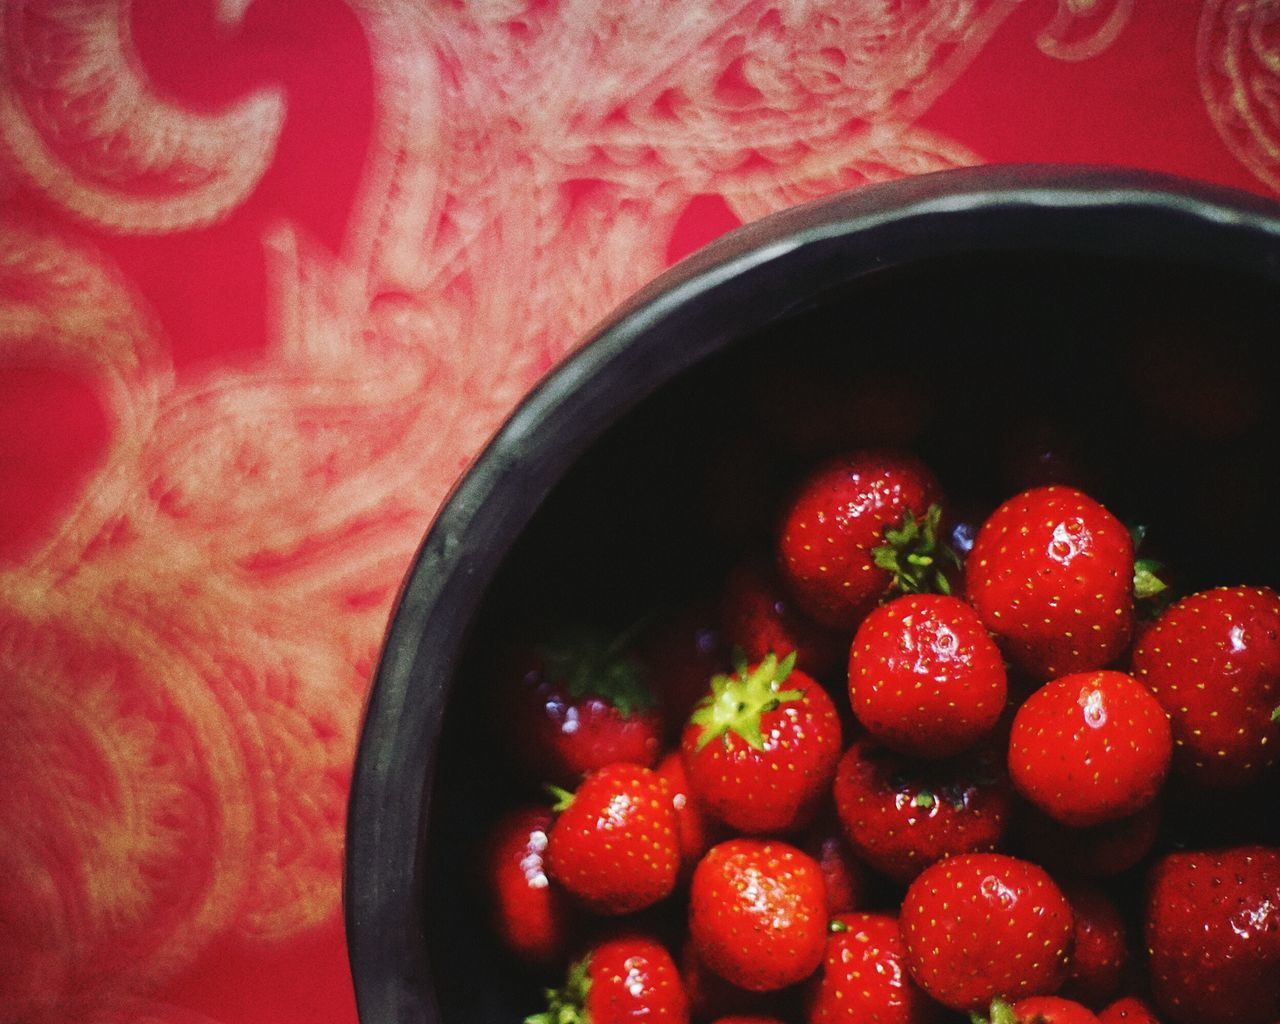 Red Fruit Strawberry Food Healthy Eating Freshness Indoors  Sweet Food Zuiko Colors ILCE7M2 Sony Alpha 7 SONY A7ii Red Zuiko 50 1.8 Natural Colors